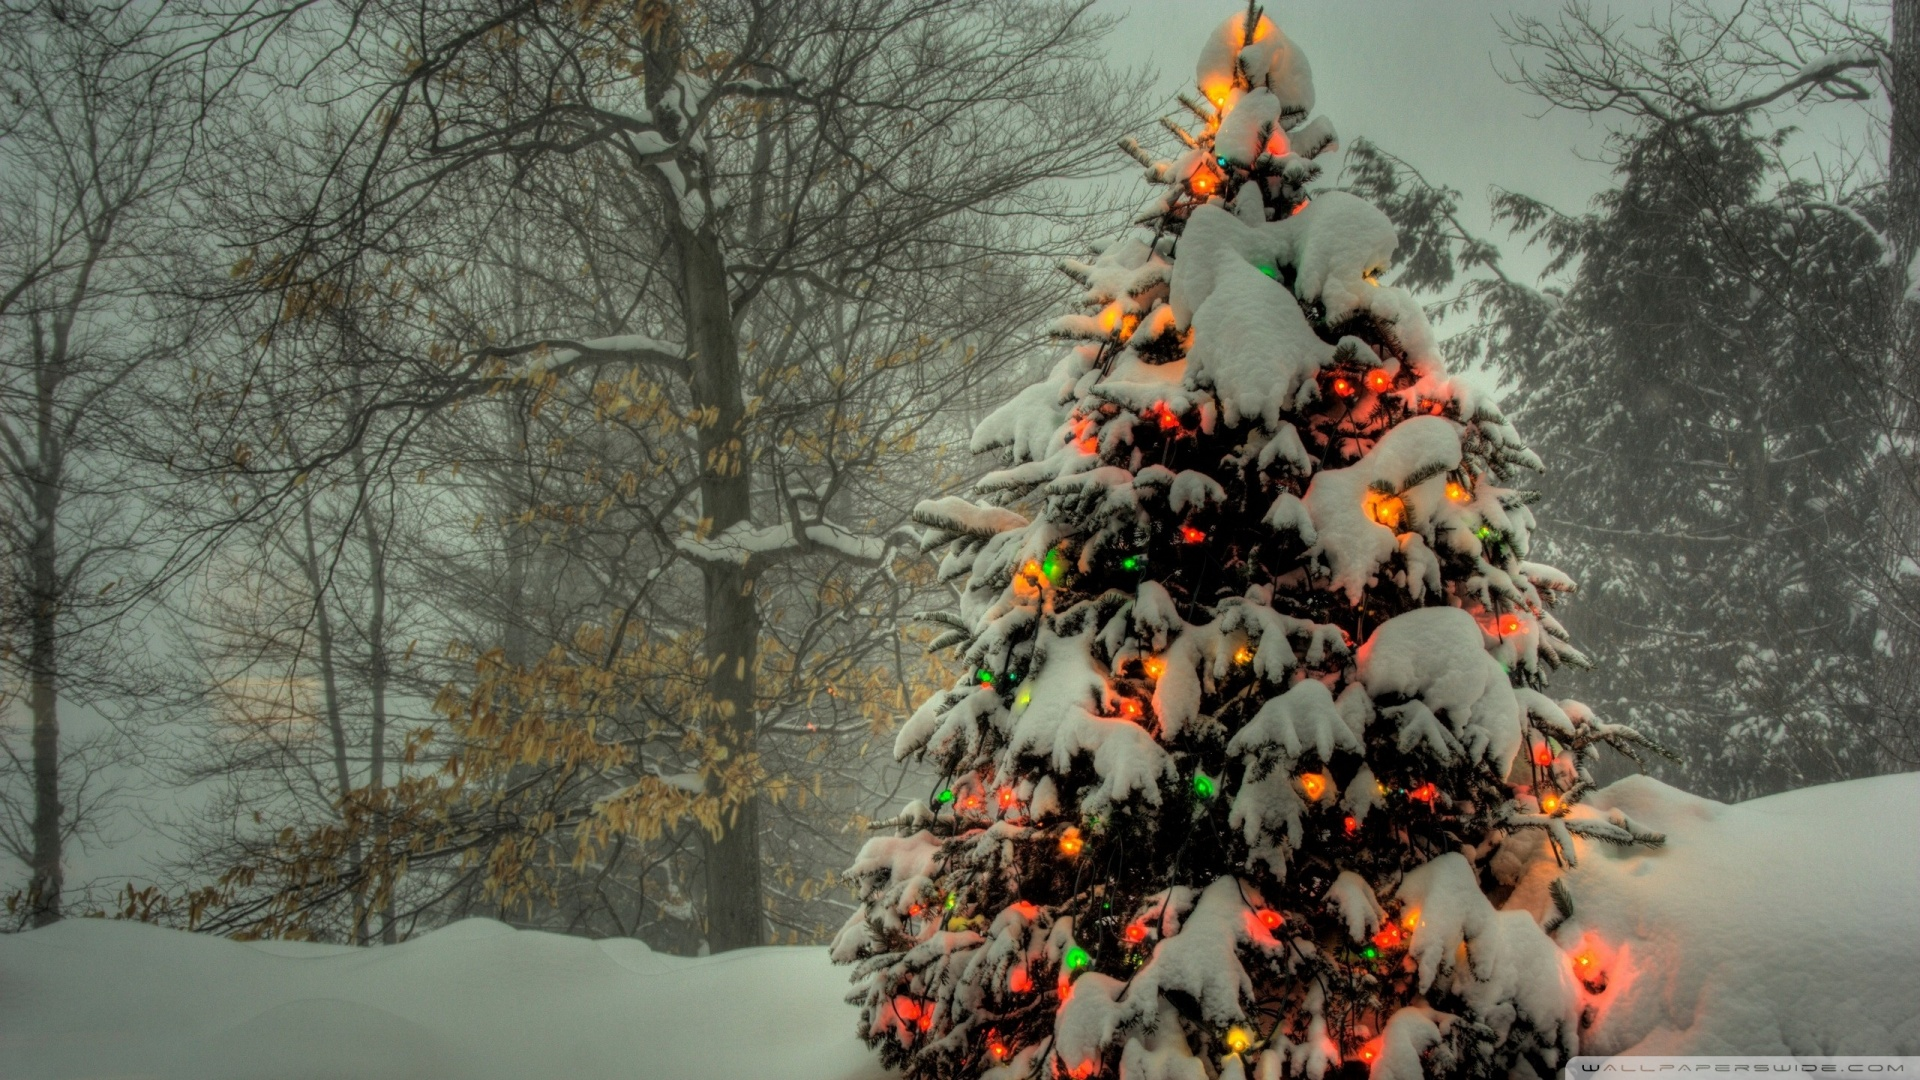 Hd Christmas Wallpaper.100 Best Hd Christmas Wallpapers For Your Desktop